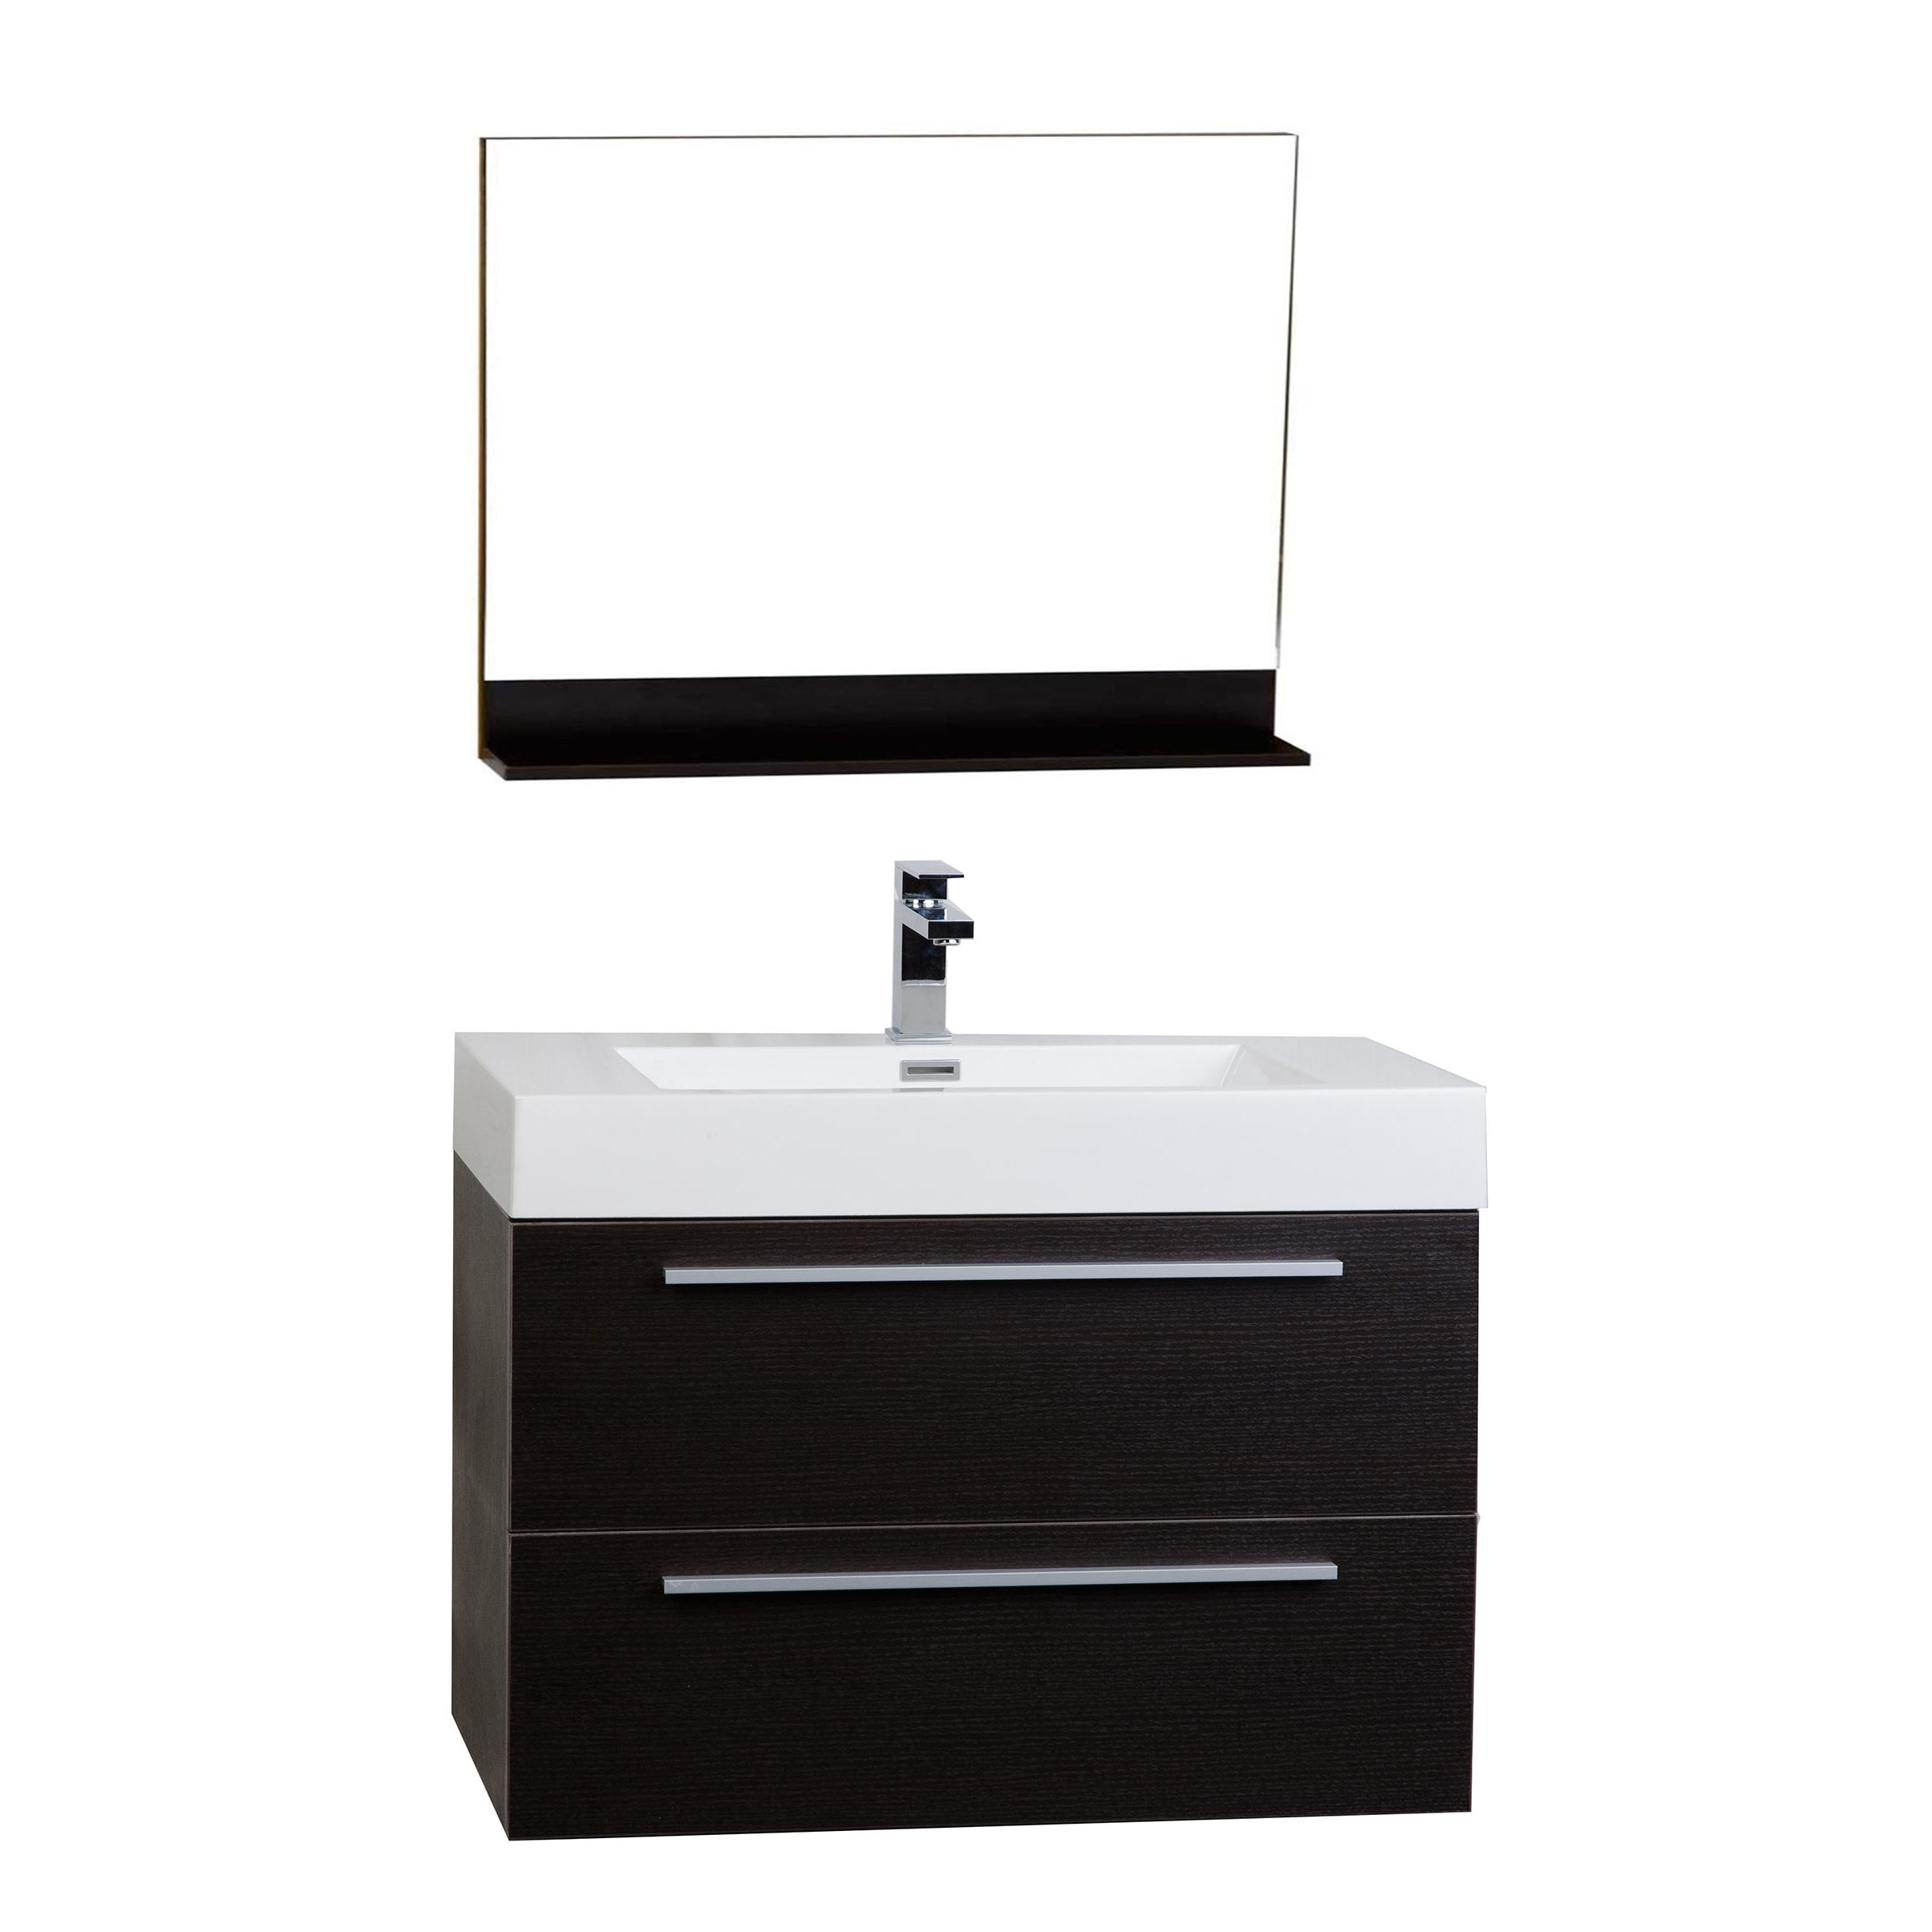 sink for top bathroom wondrous furniture vanity contemporary cabinet design wall ideas mount vanities depot inch bathroo home double of deep lowes